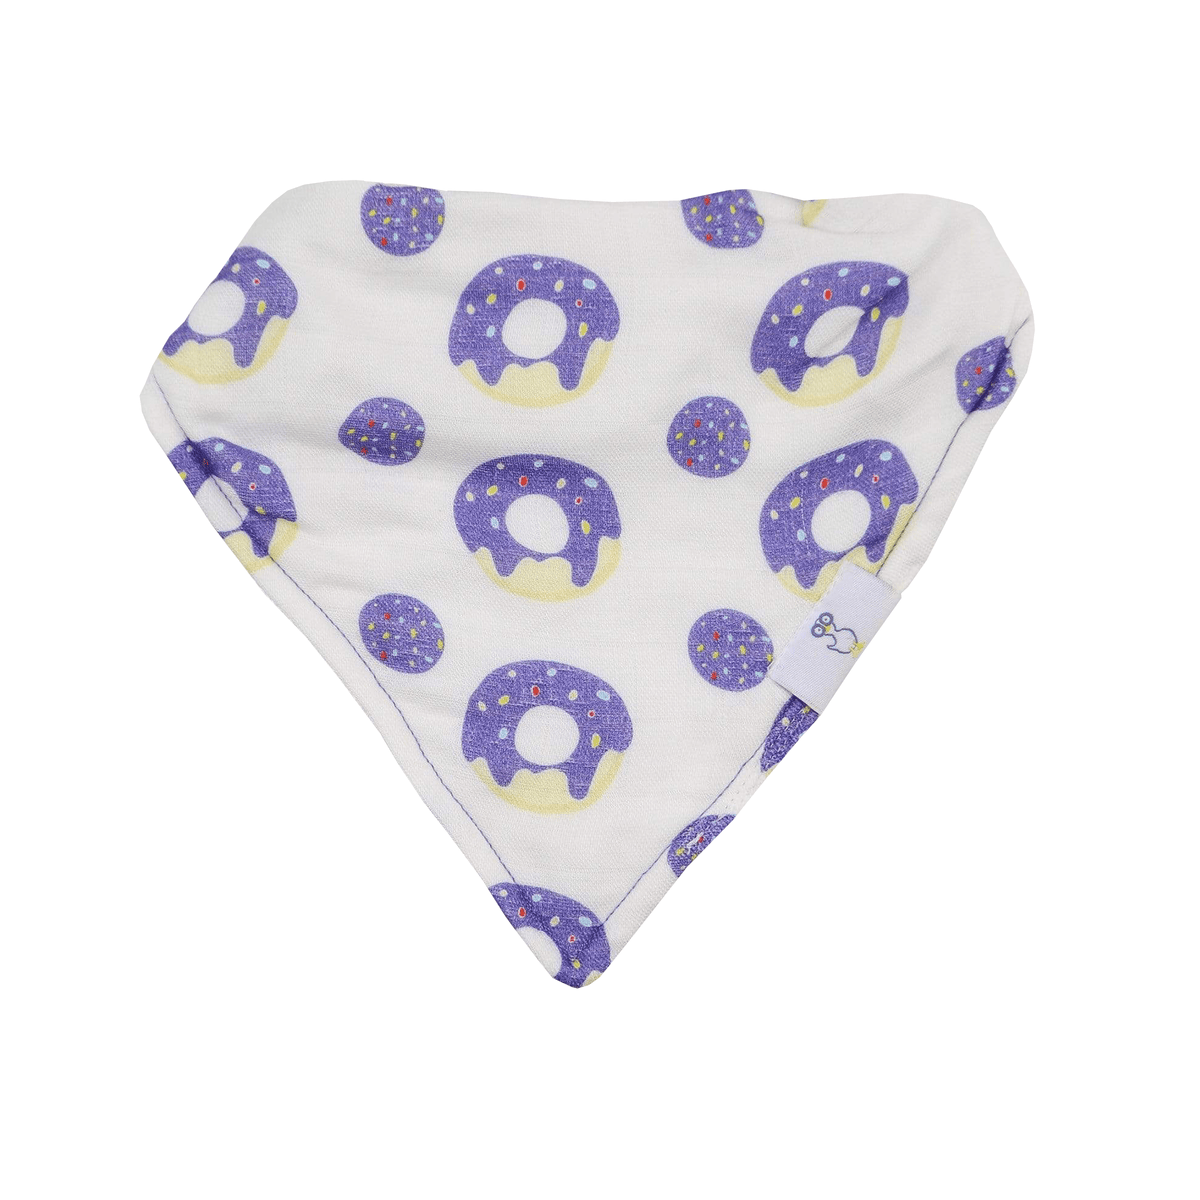 2 PK Muslin & Terry Cloth Bib Set Donut - Goosewaddle